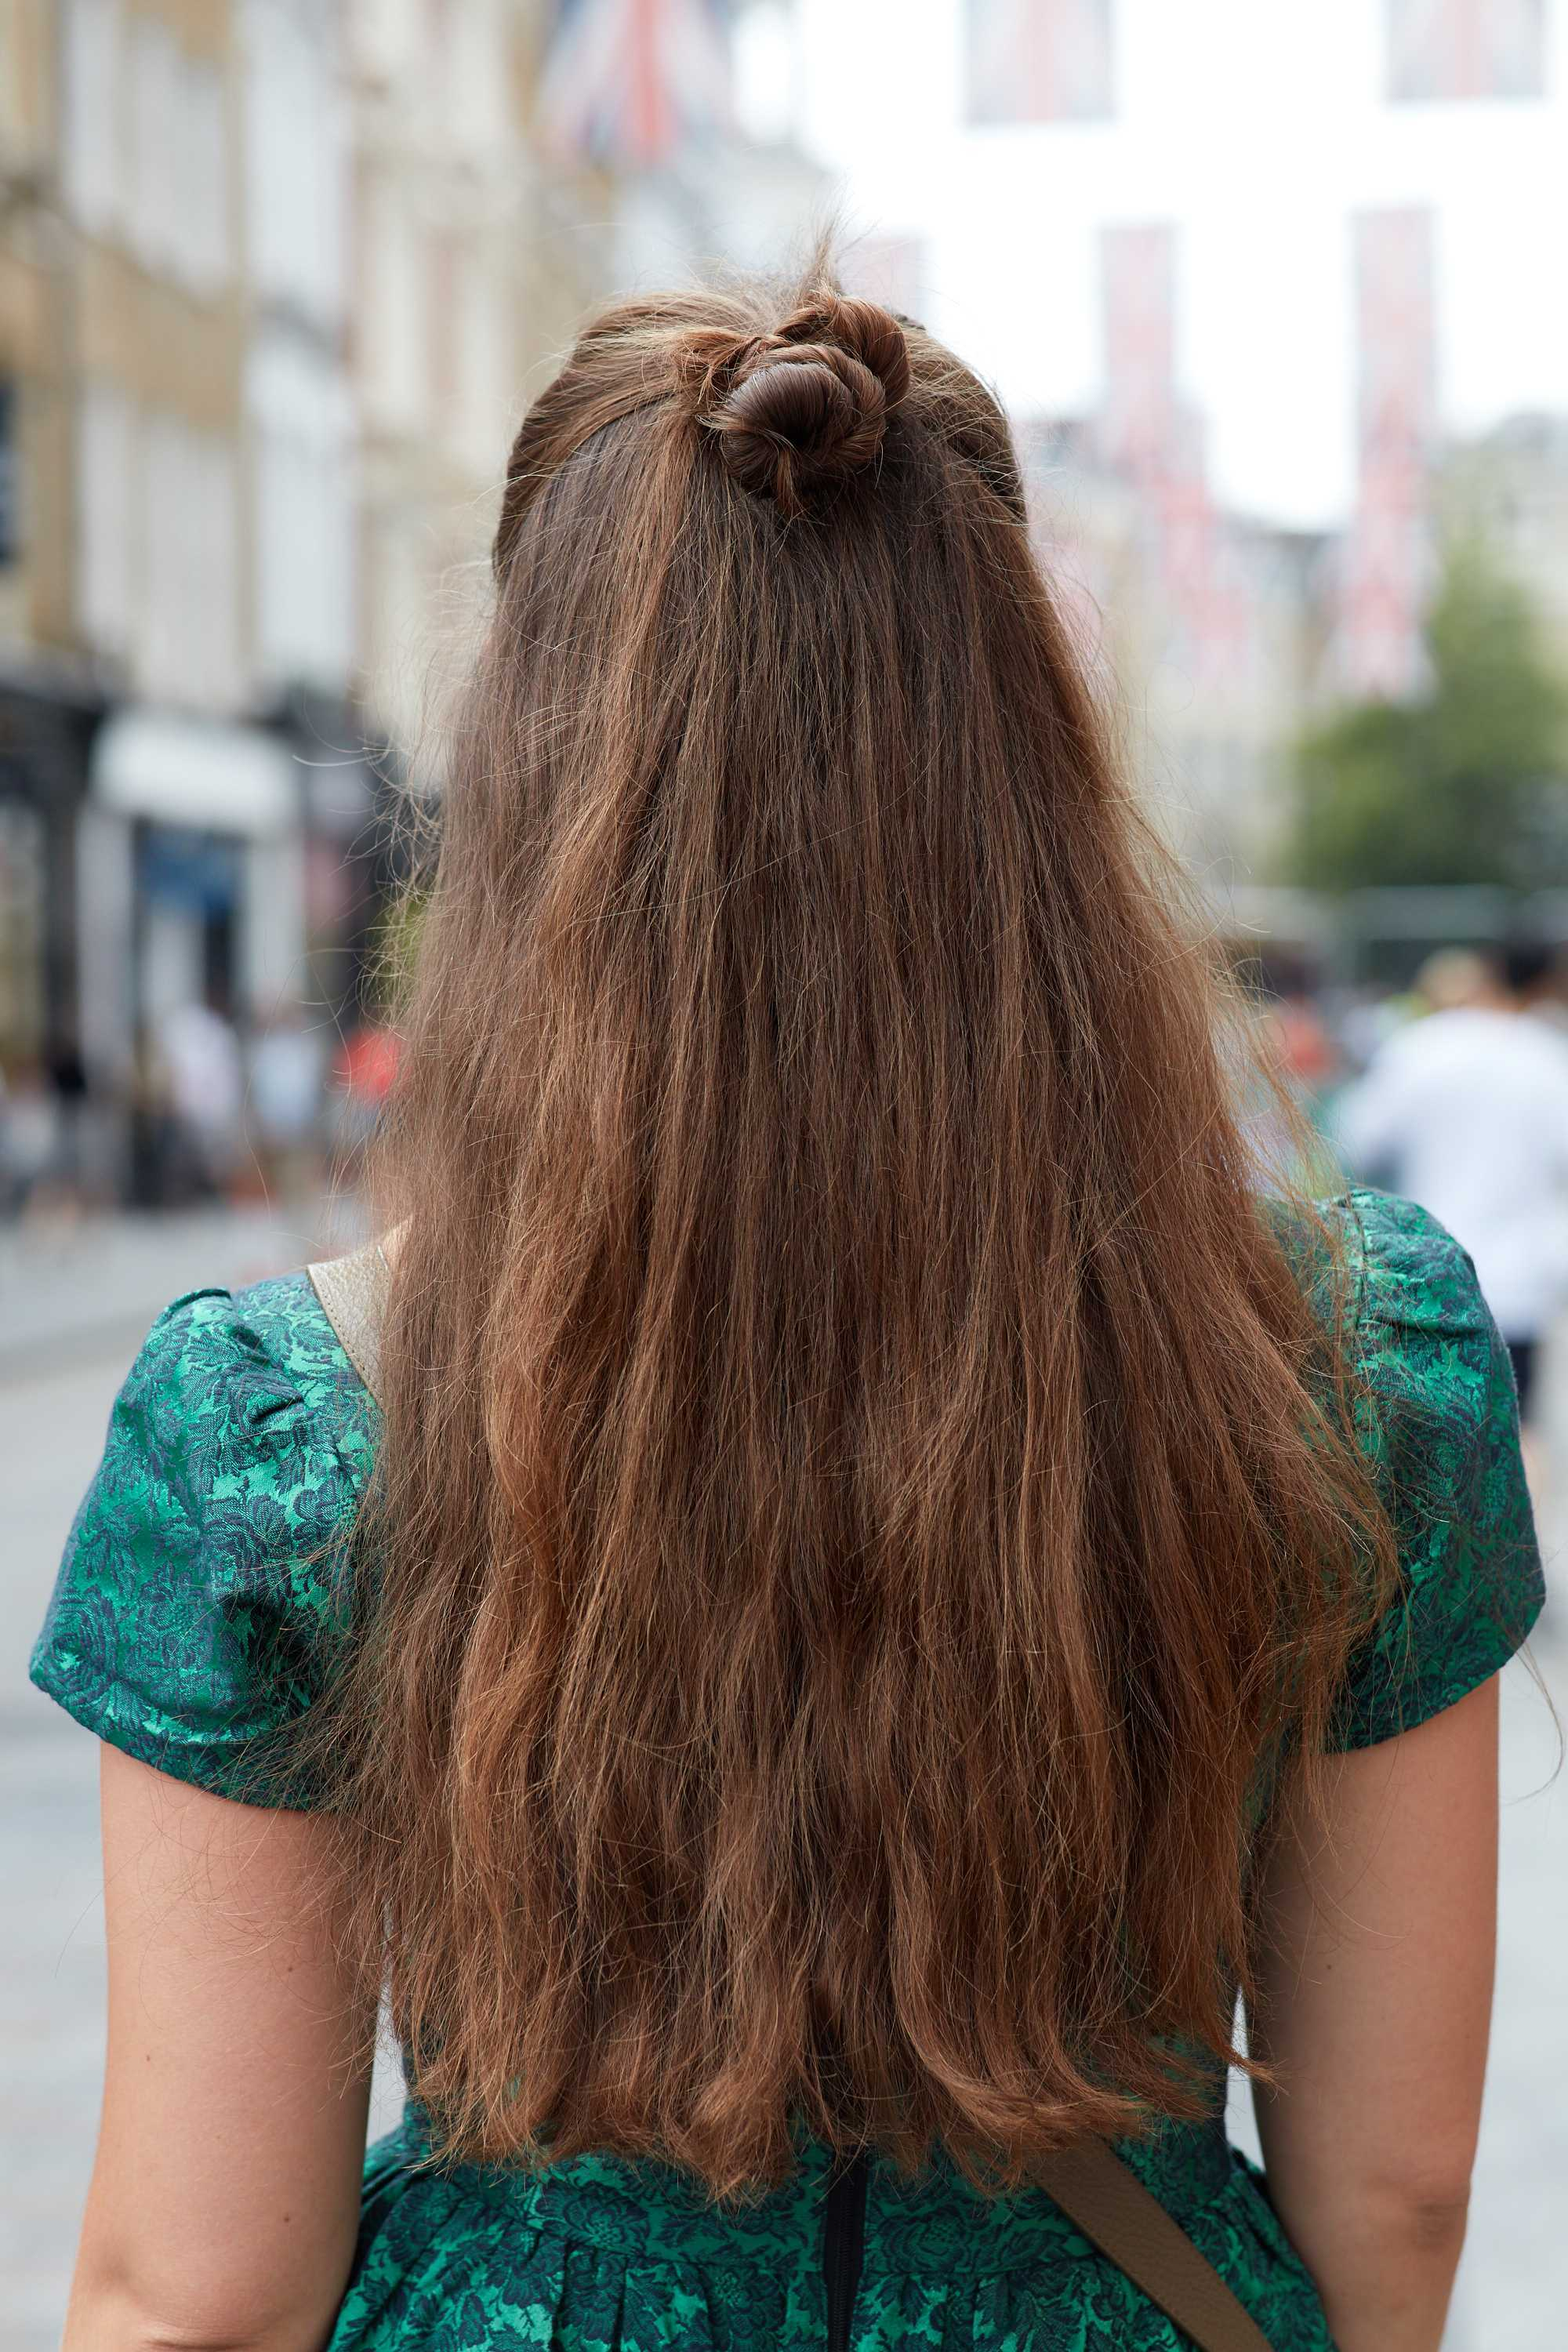 Long hair ideas: Shot of a woman with long chocolate brown hair styled into a half-up, half-down knot bun, wearing green dress and posing outside